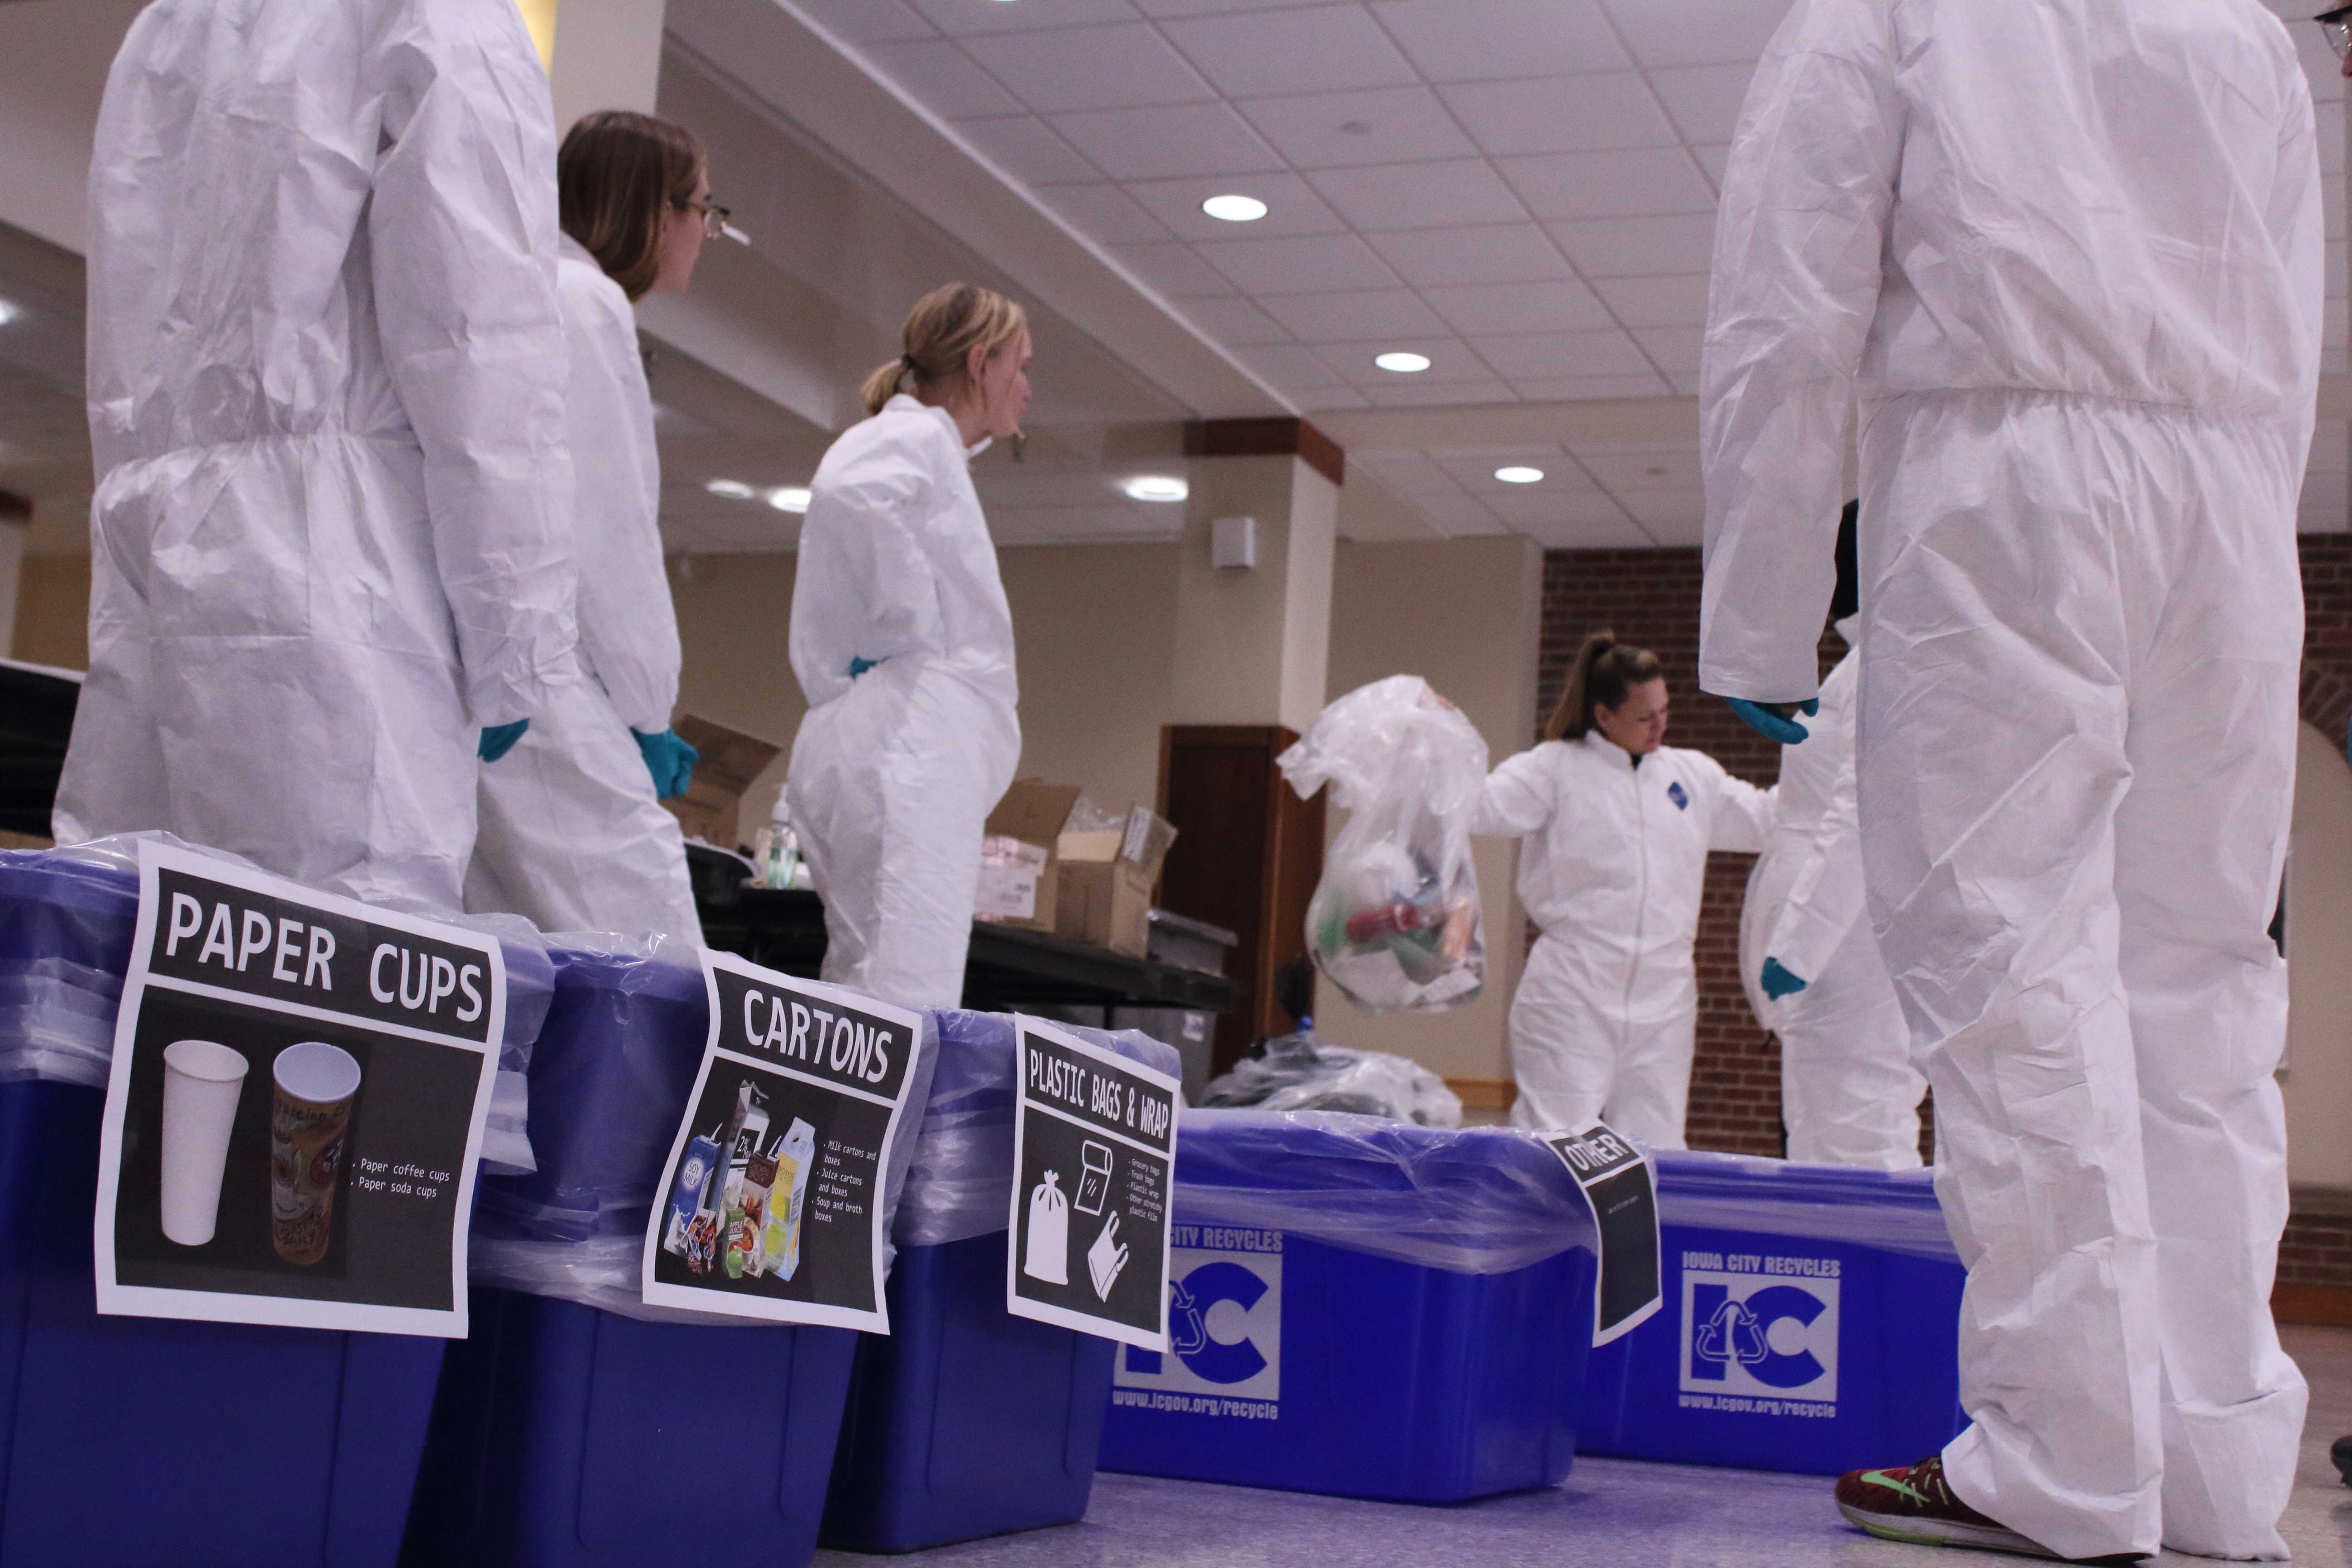 Ui Continues Digging Recycling Habits Based On Waste Audit